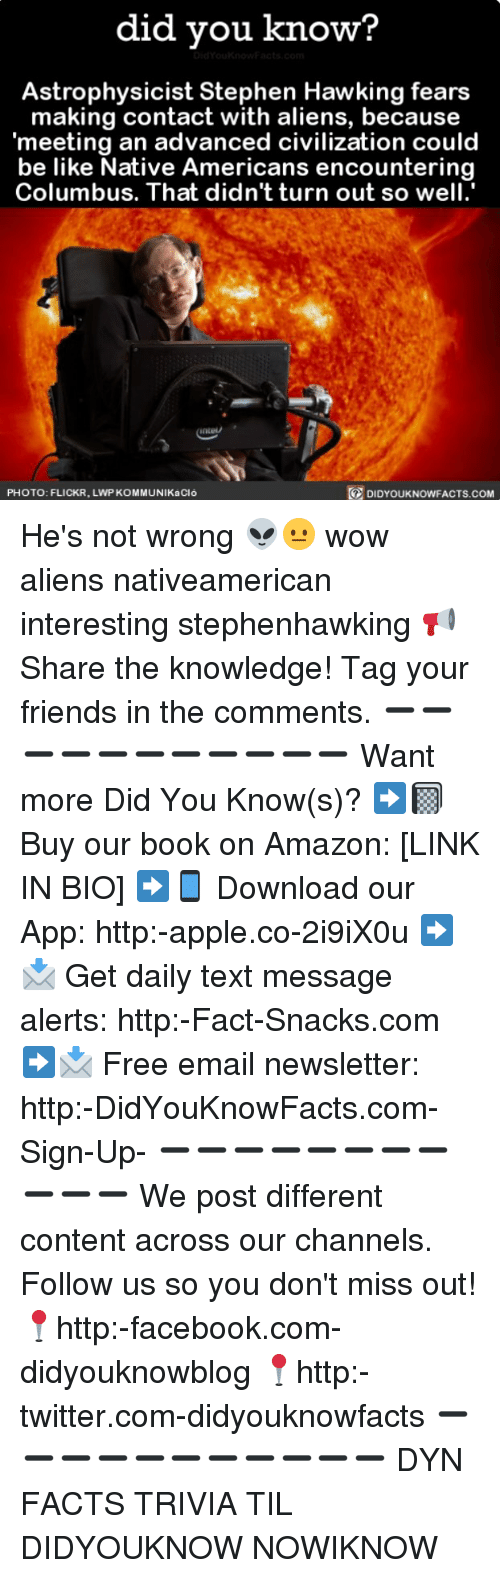 Amazon, Apple, and Be Like: did you know?  Astrophysicist Stephen Hawking fears  making contact with aliens, because  meeting an advanced civilization could  be like Native Americans encountering  Columbus. That didn't turn out so well  PHOTO: FLICKR, LWP KOMMUNIKaCló  DIDYOUKNOWFACTS.COM He's not wrong 👽😐 wow aliens nativeamerican interesting stephenhawking 📢 Share the knowledge! Tag your friends in the comments. ➖➖➖➖➖➖➖➖➖➖➖ Want more Did You Know(s)? ➡📓 Buy our book on Amazon: [LINK IN BIO] ➡📱 Download our App: http:-apple.co-2i9iX0u ➡📩 Get daily text message alerts: http:-Fact-Snacks.com ➡📩 Free email newsletter: http:-DidYouKnowFacts.com-Sign-Up- ➖➖➖➖➖➖➖➖➖➖➖ We post different content across our channels. Follow us so you don't miss out! 📍http:-facebook.com-didyouknowblog 📍http:-twitter.com-didyouknowfacts ➖➖➖➖➖➖➖➖➖➖➖ DYN FACTS TRIVIA TIL DIDYOUKNOW NOWIKNOW